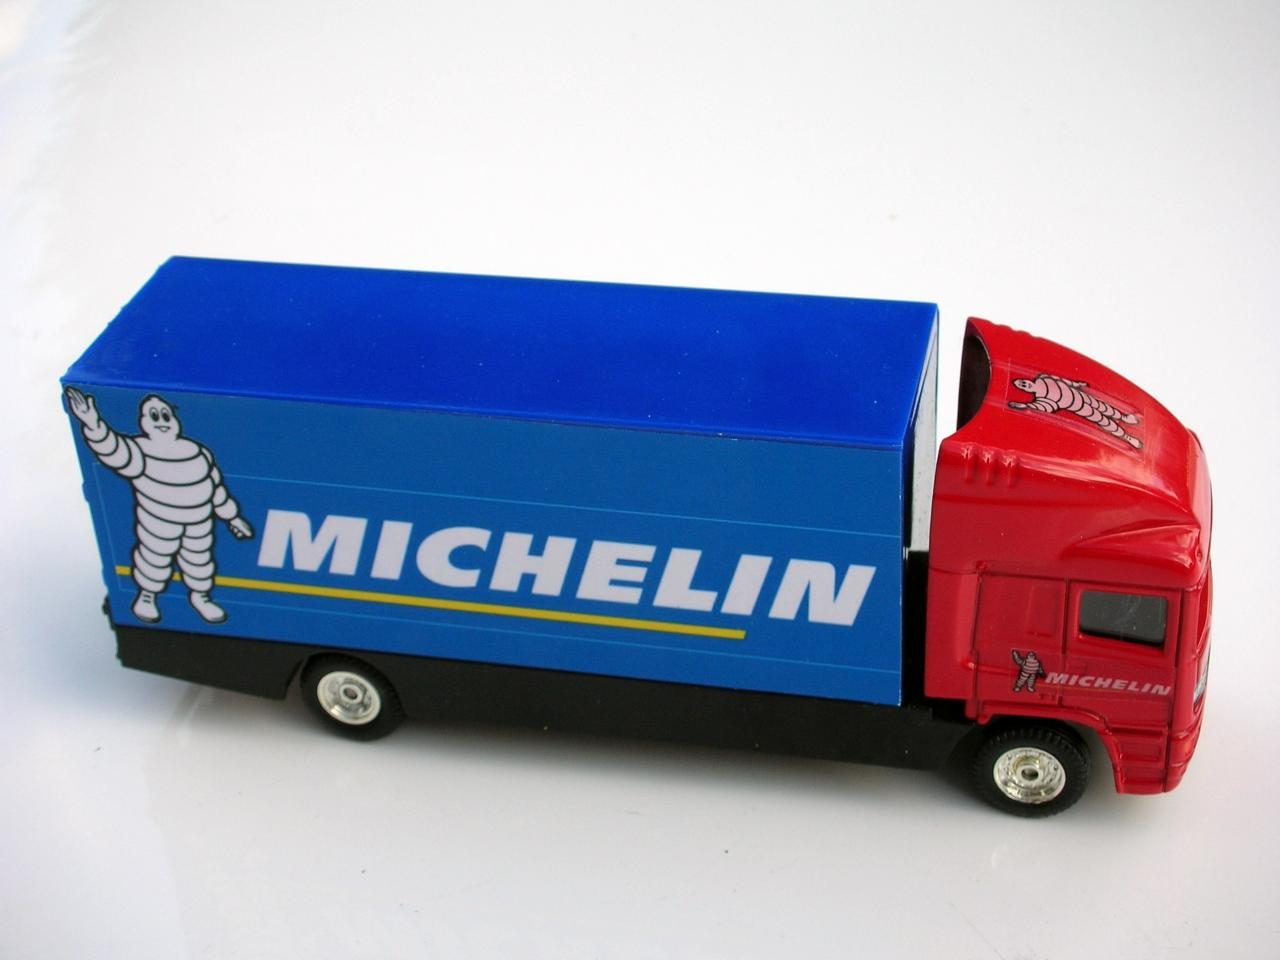 Erf for Porte 12 michelin